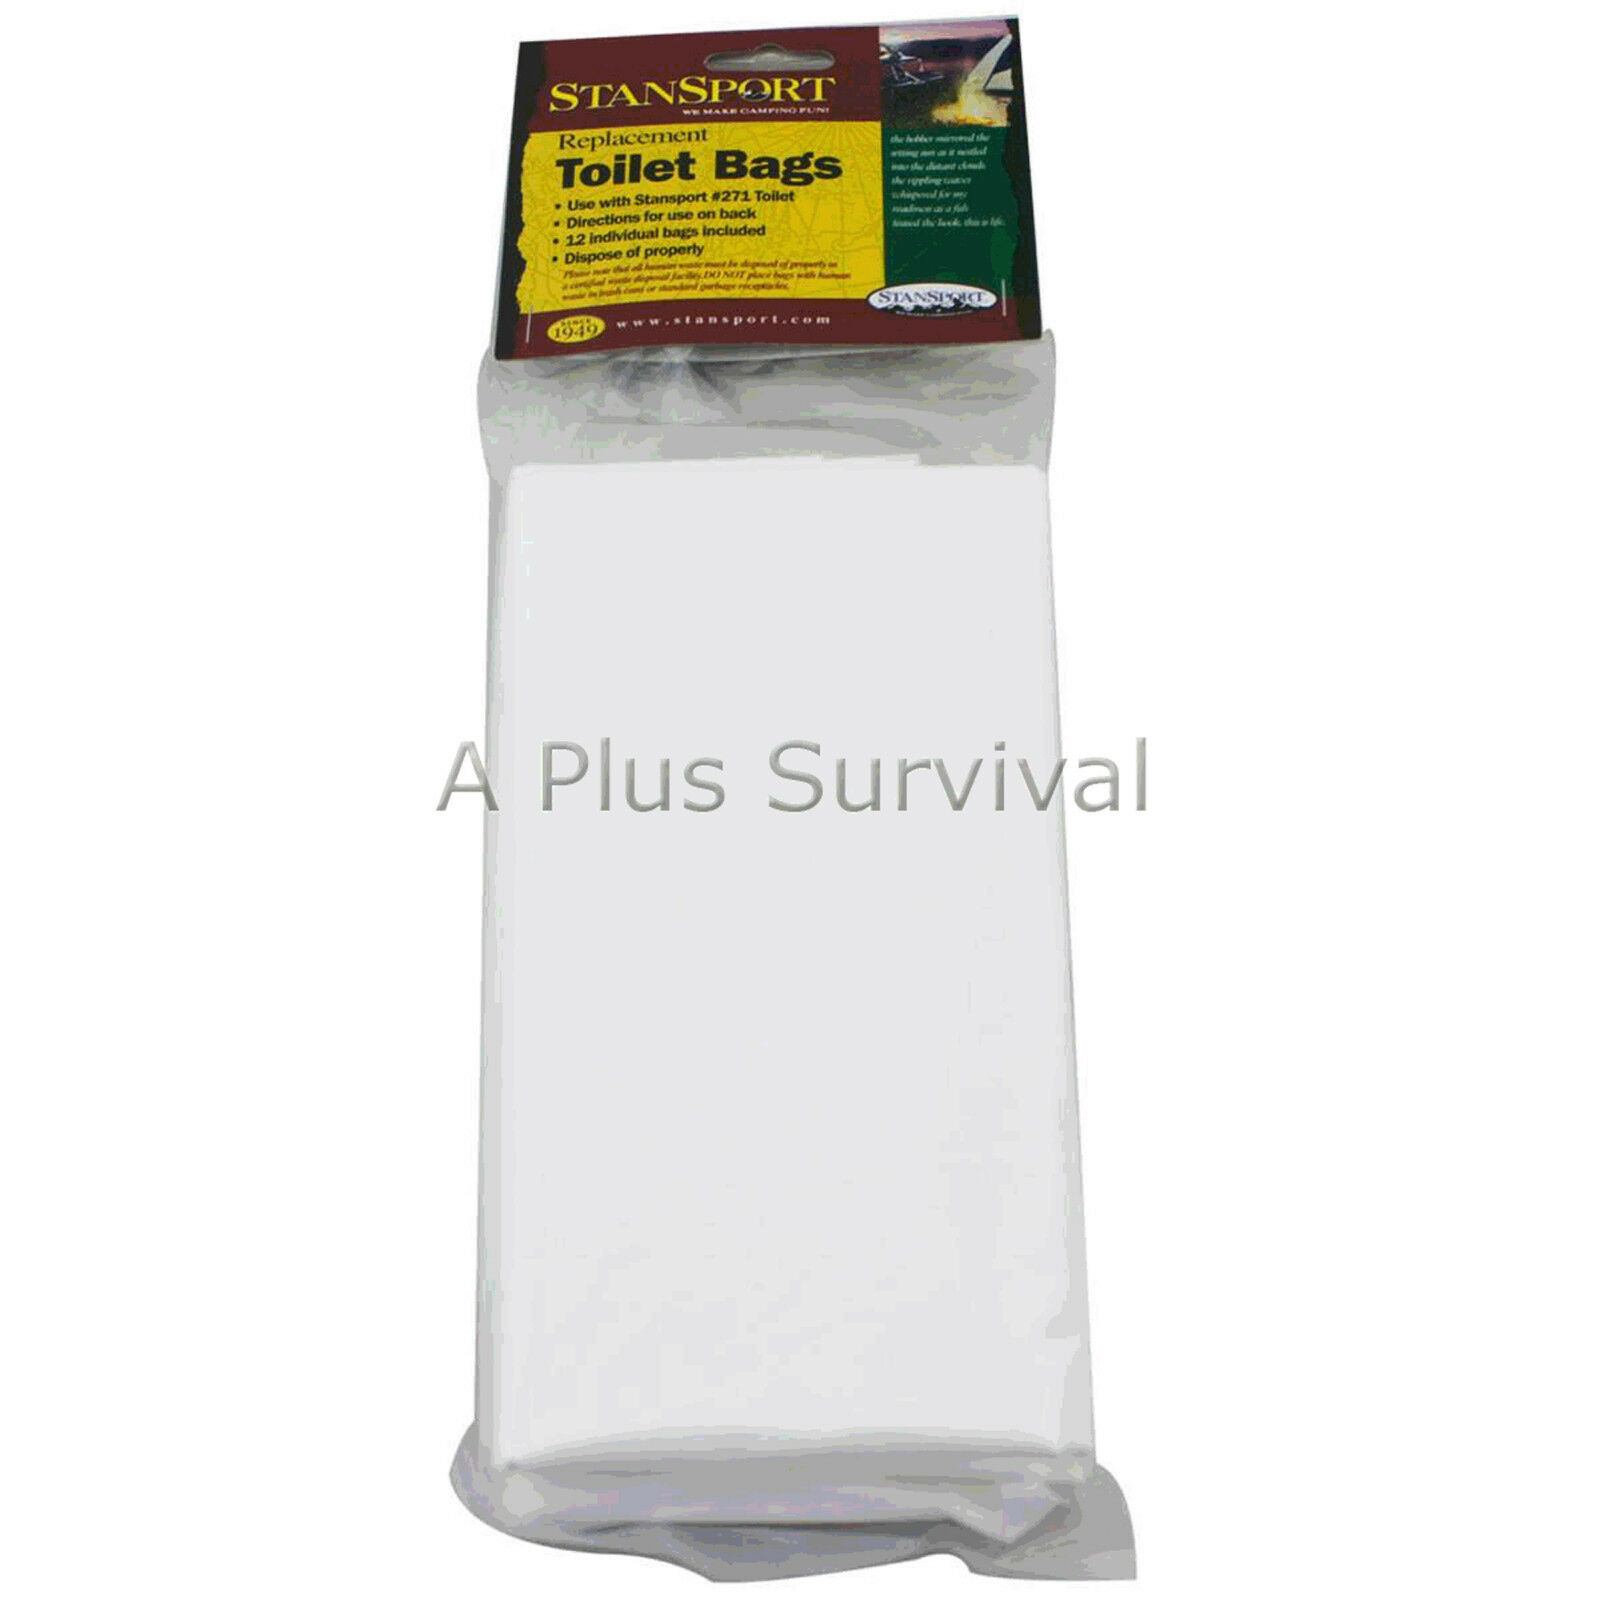 Lot of 216 Toilet Bags   Liners for Portable Toilets